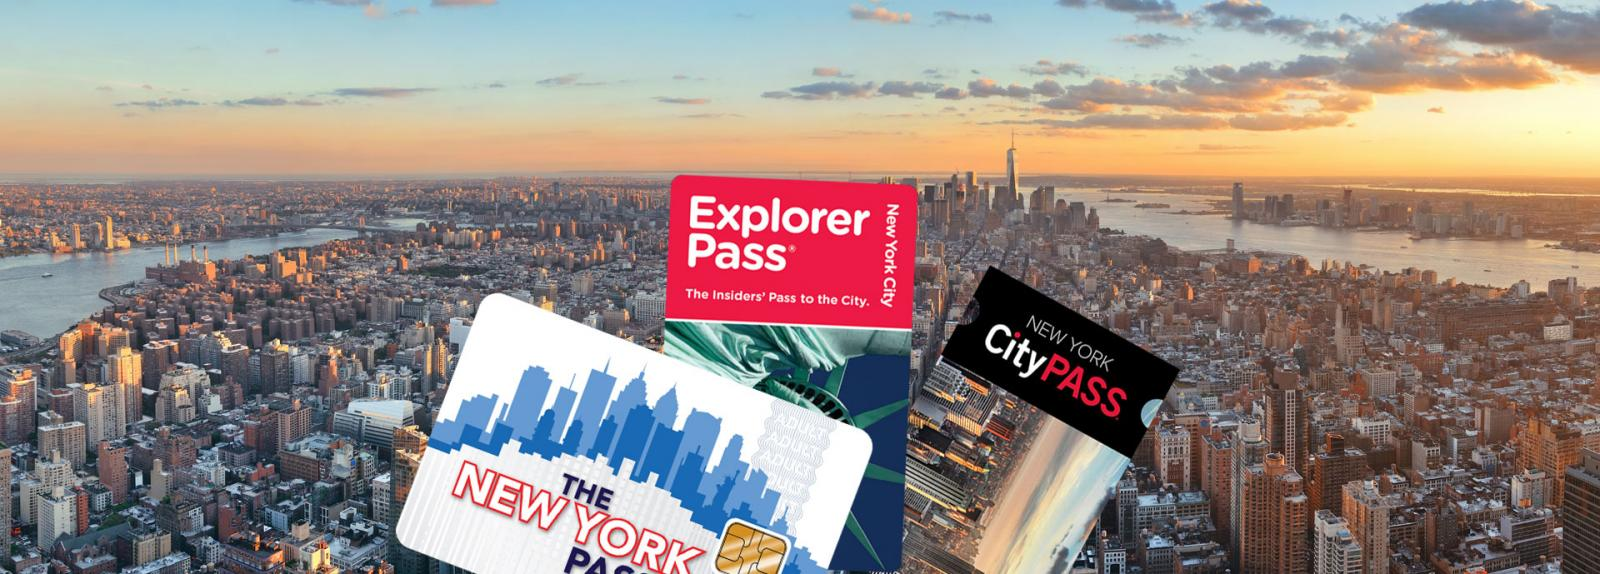 New York CityPASS vs. New York Pass vs. Explorer Pass